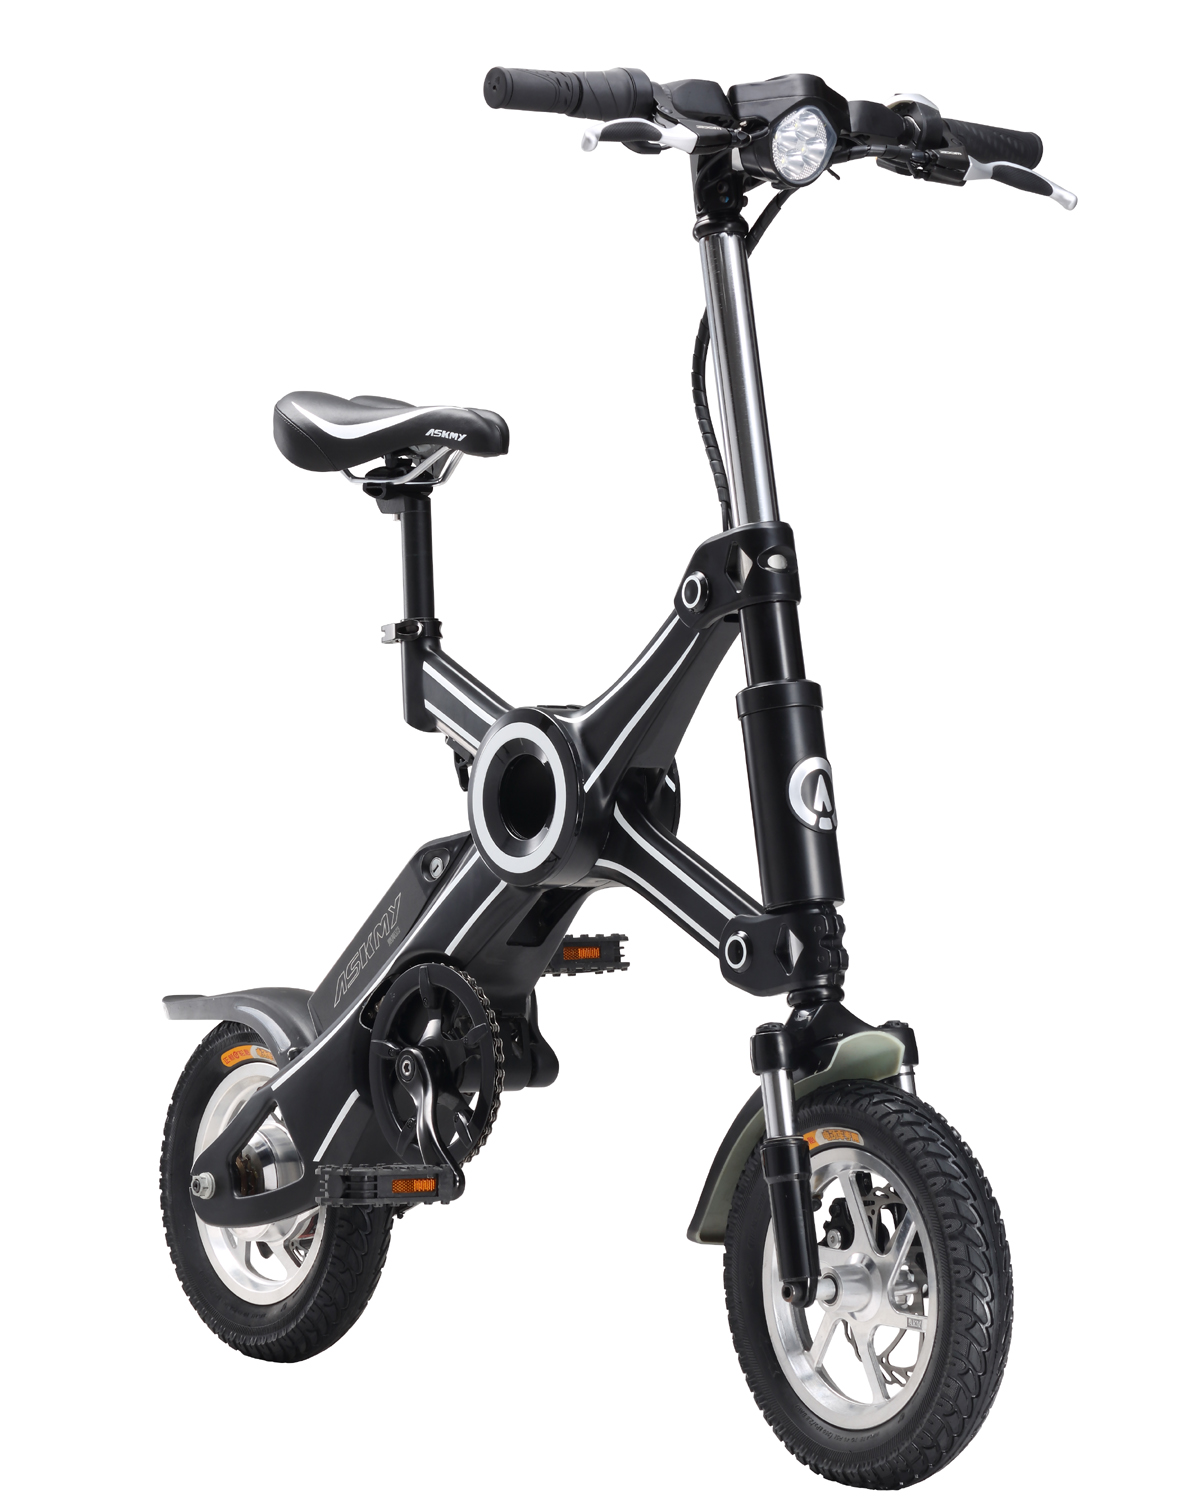 electric scooter Askmy X3 ราคา bike